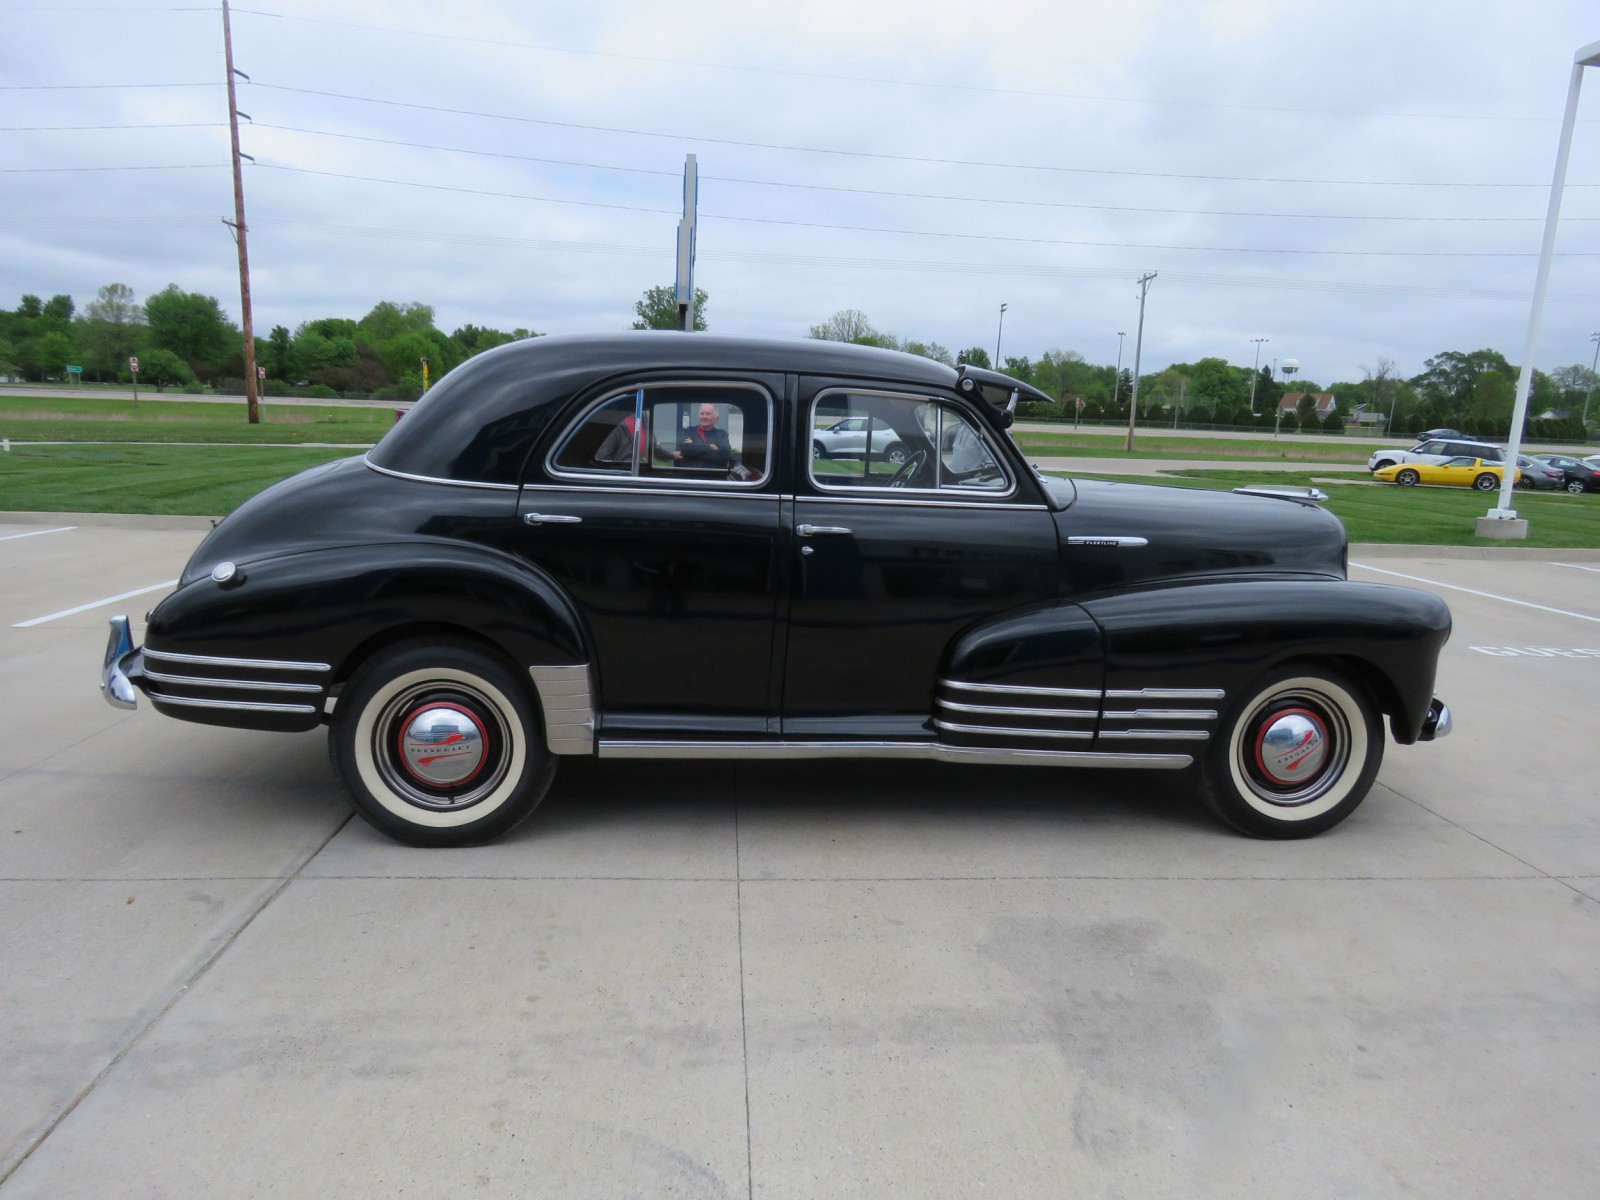 1947 Chevrolet Fleetline 4dr Sedan - Image 9